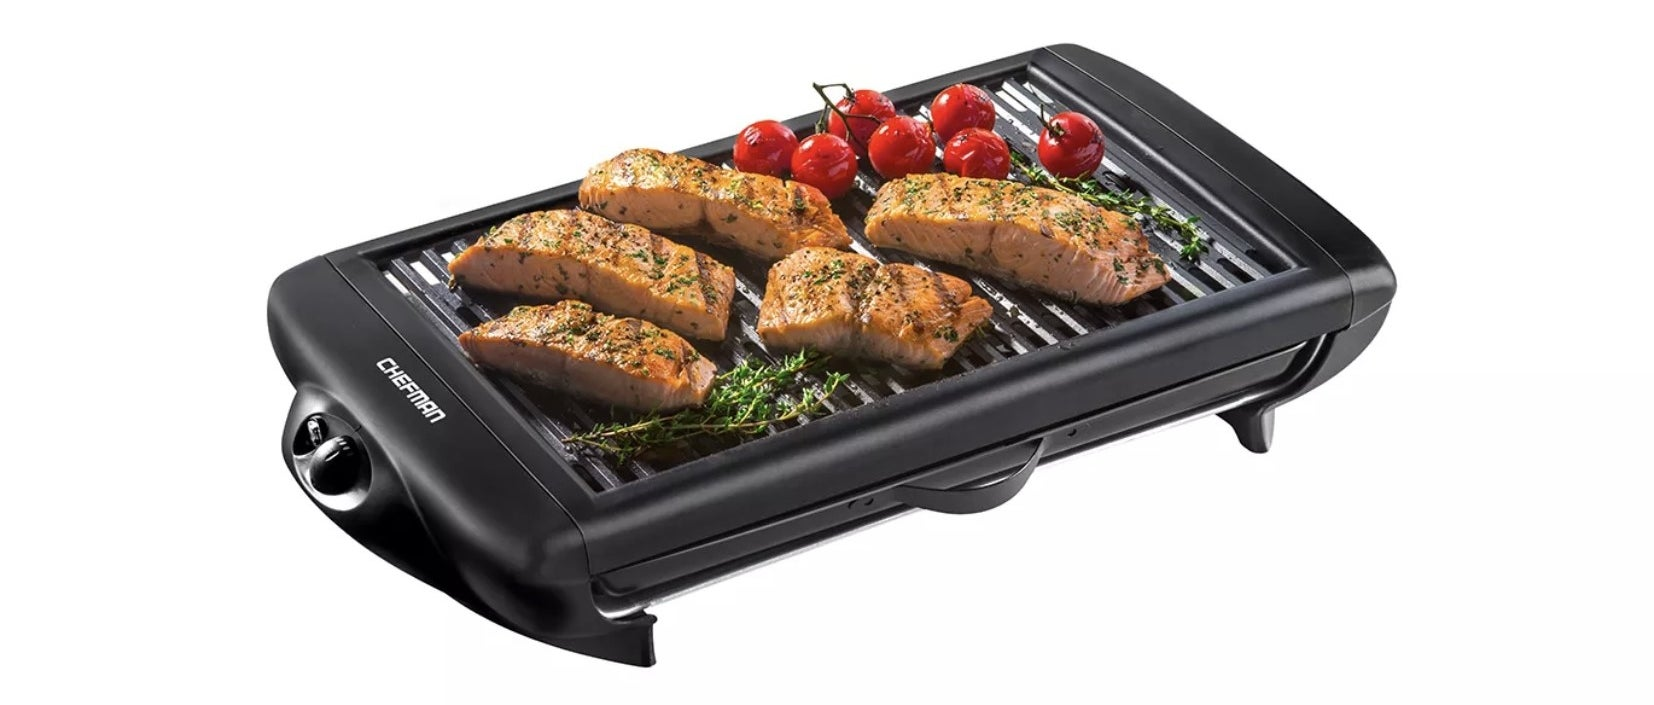 the smokeless indoor grill with salmon, tomatoes, and fresh herbs on it